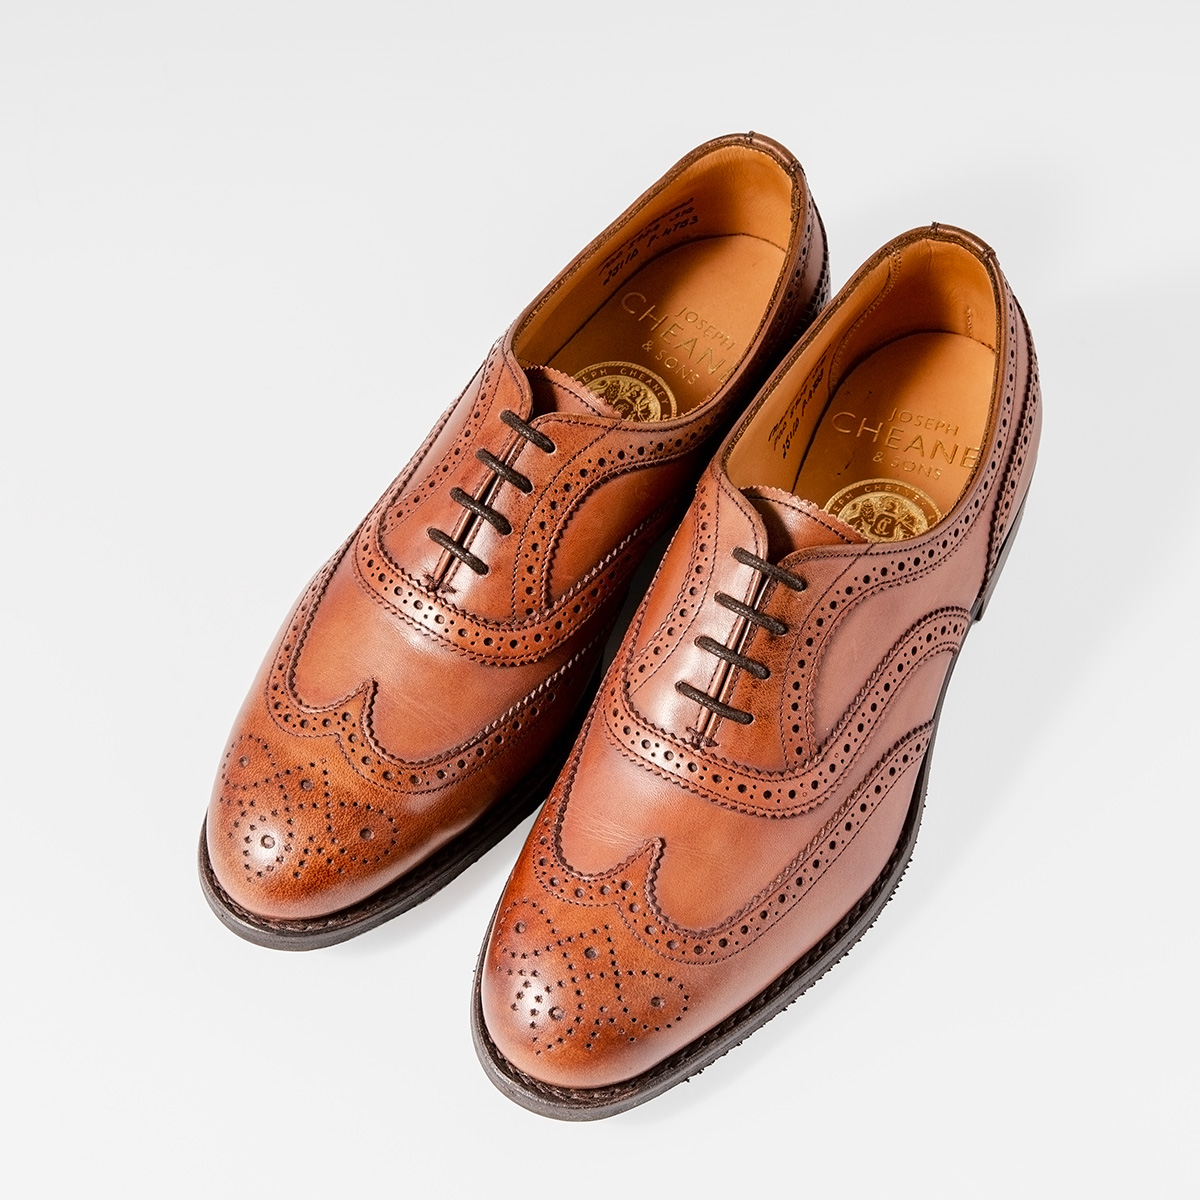 JOSEPH CHEANEY WOMEN Collection MILLY